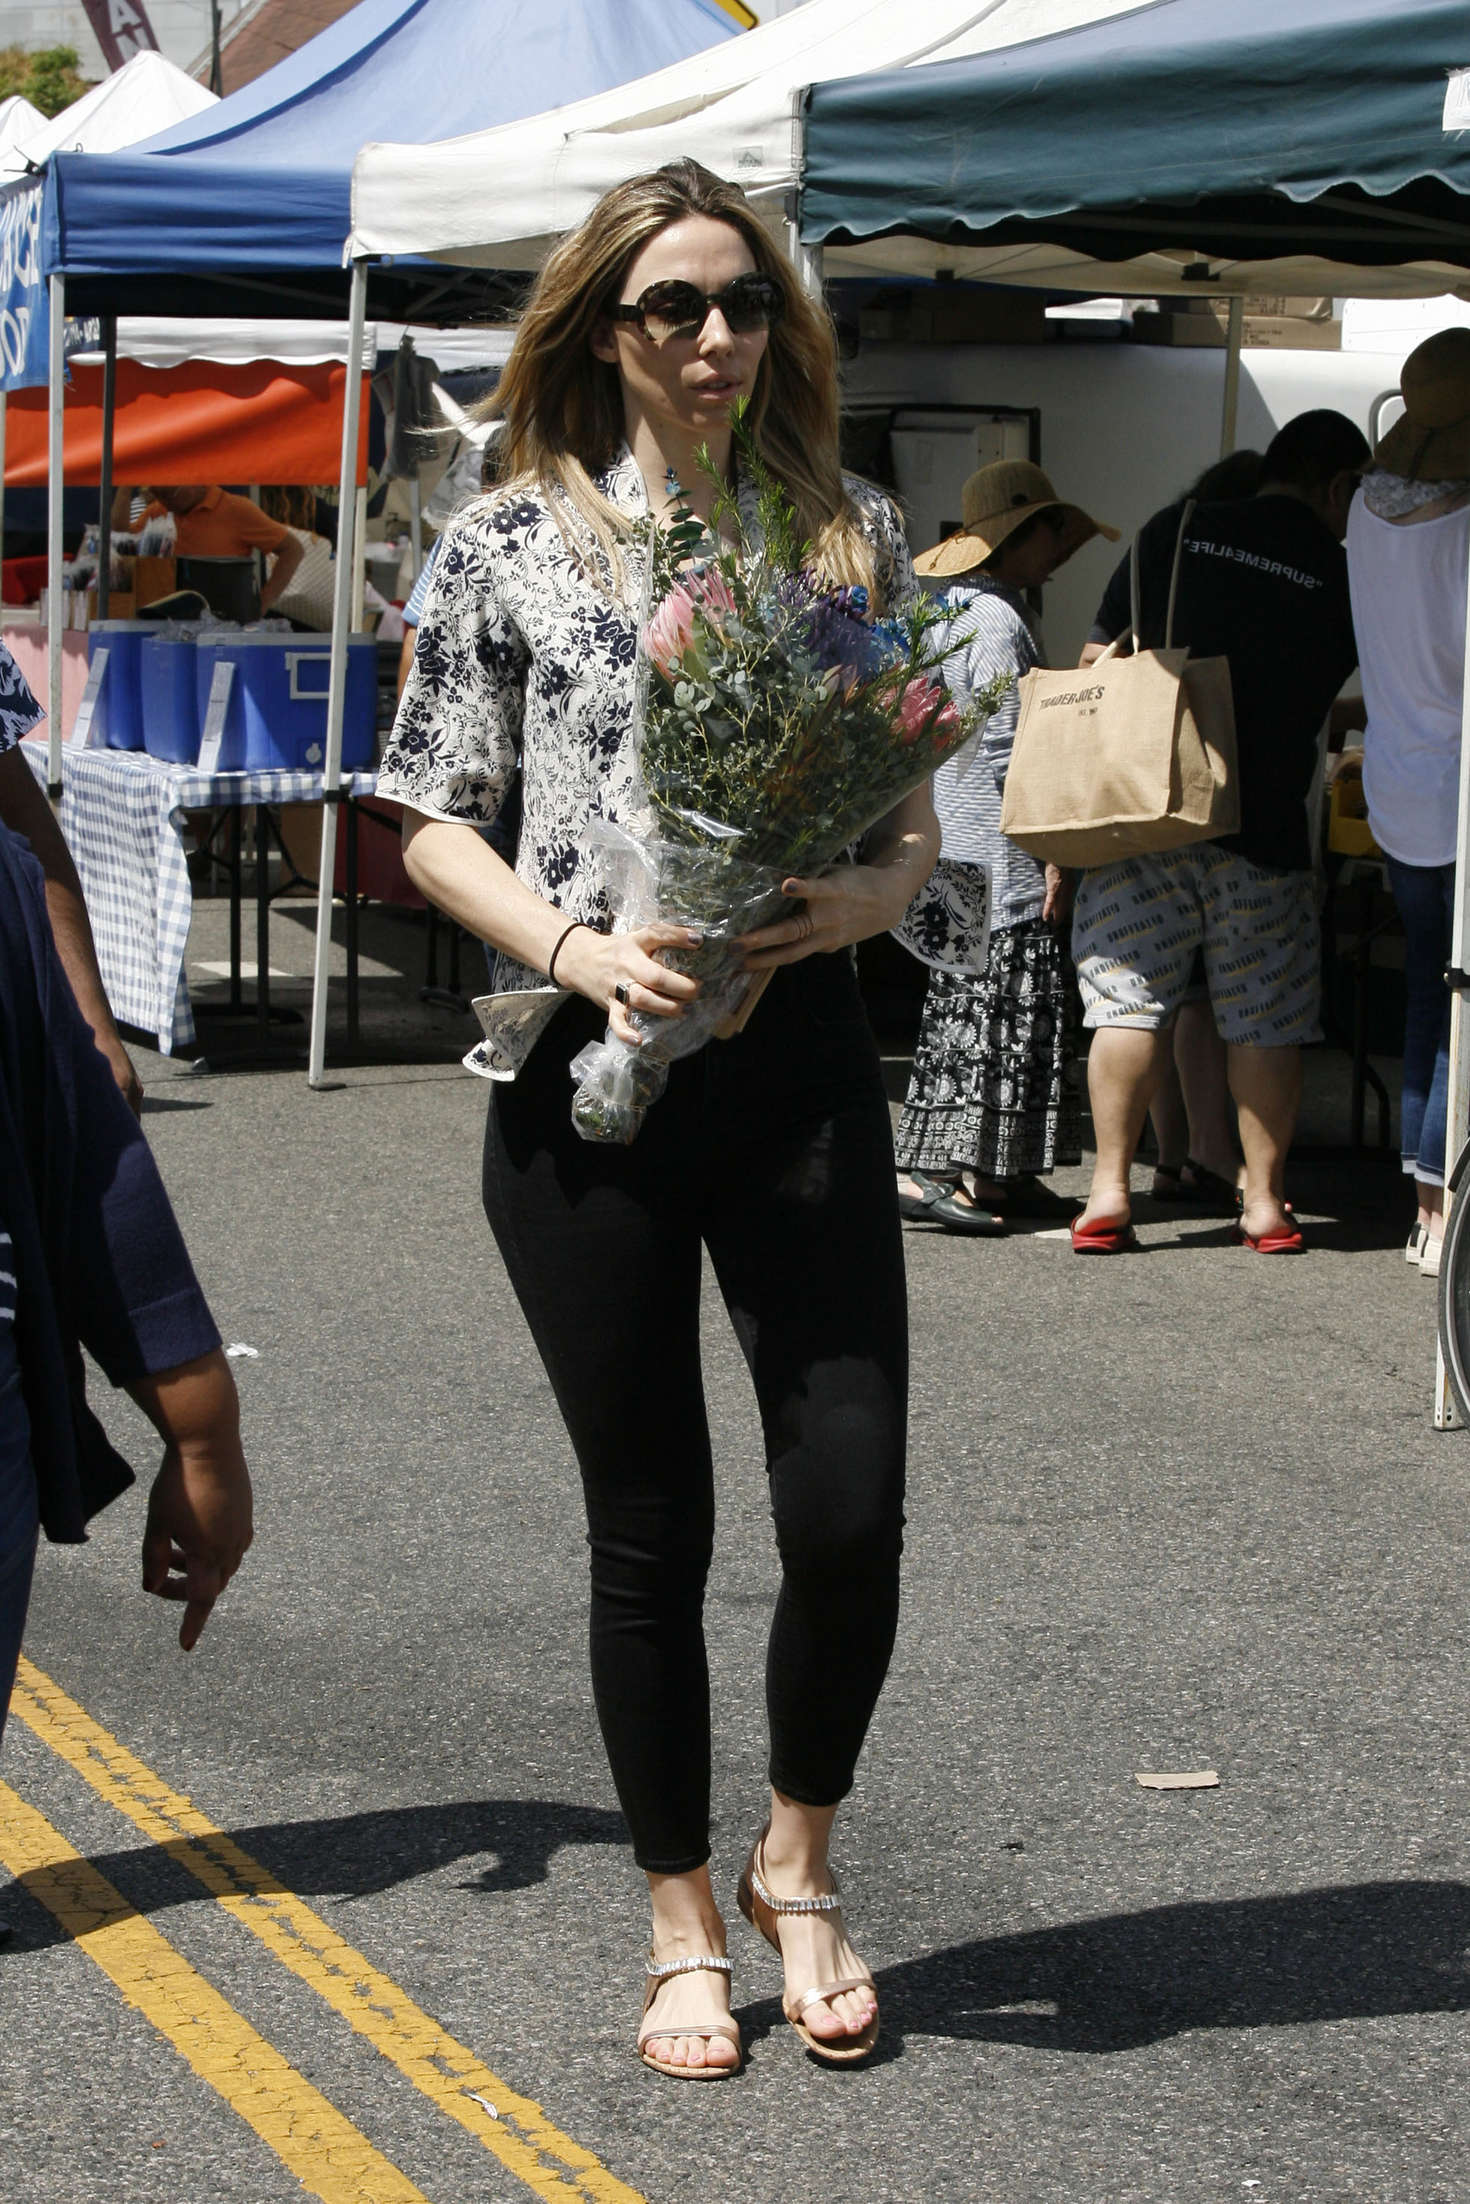 Whitney Cummings at Farmers Market in Studio City